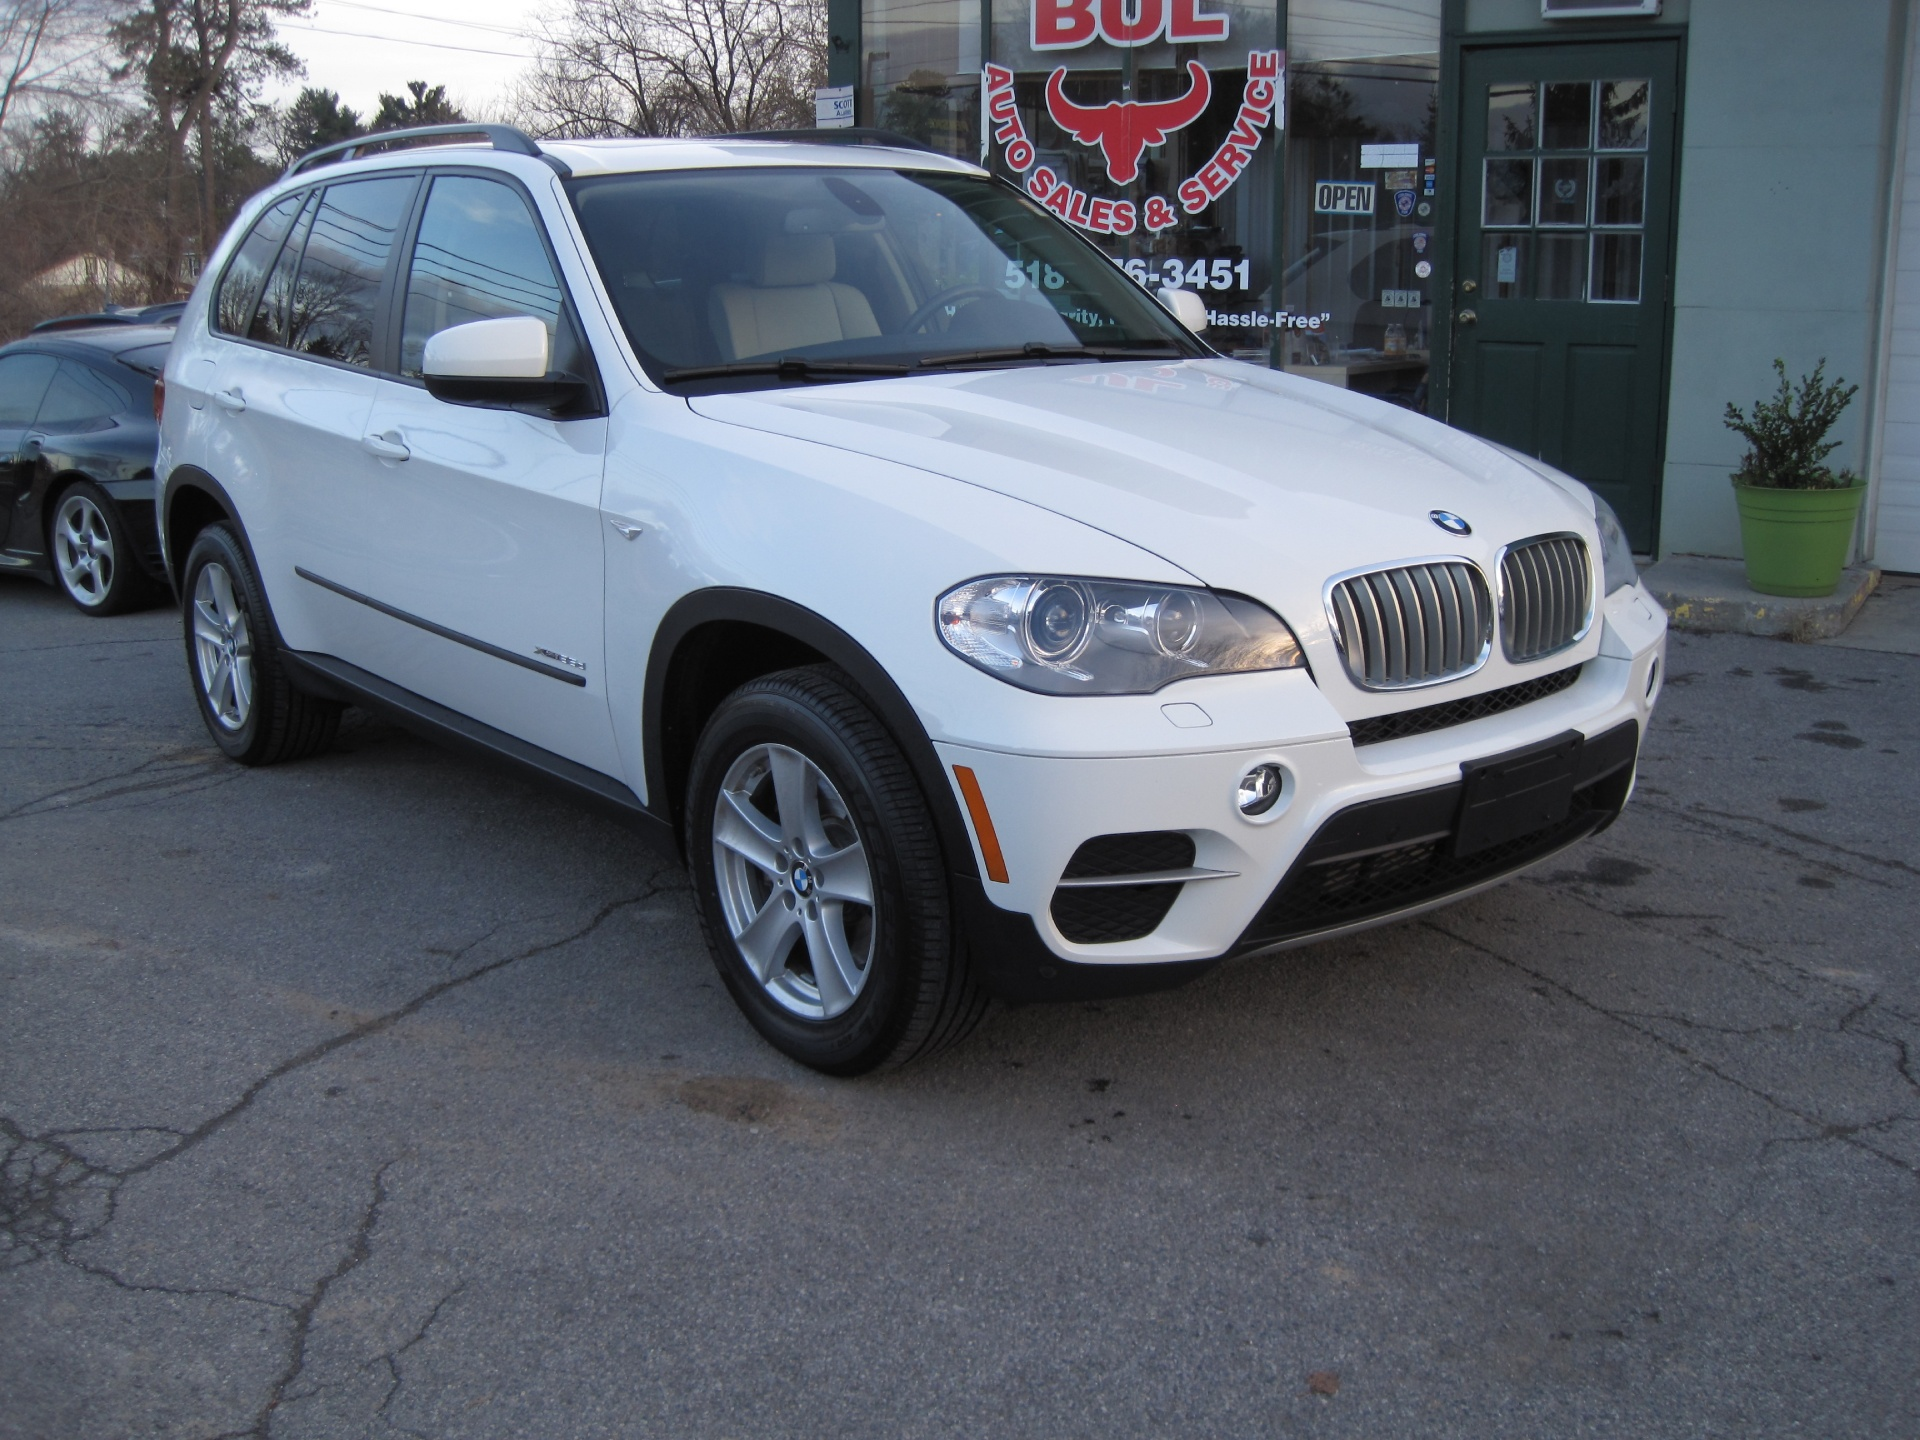 2012 Bmw X5 Xdrive35d Awd Diesel Loaded Msrp Was 63 345 Stock